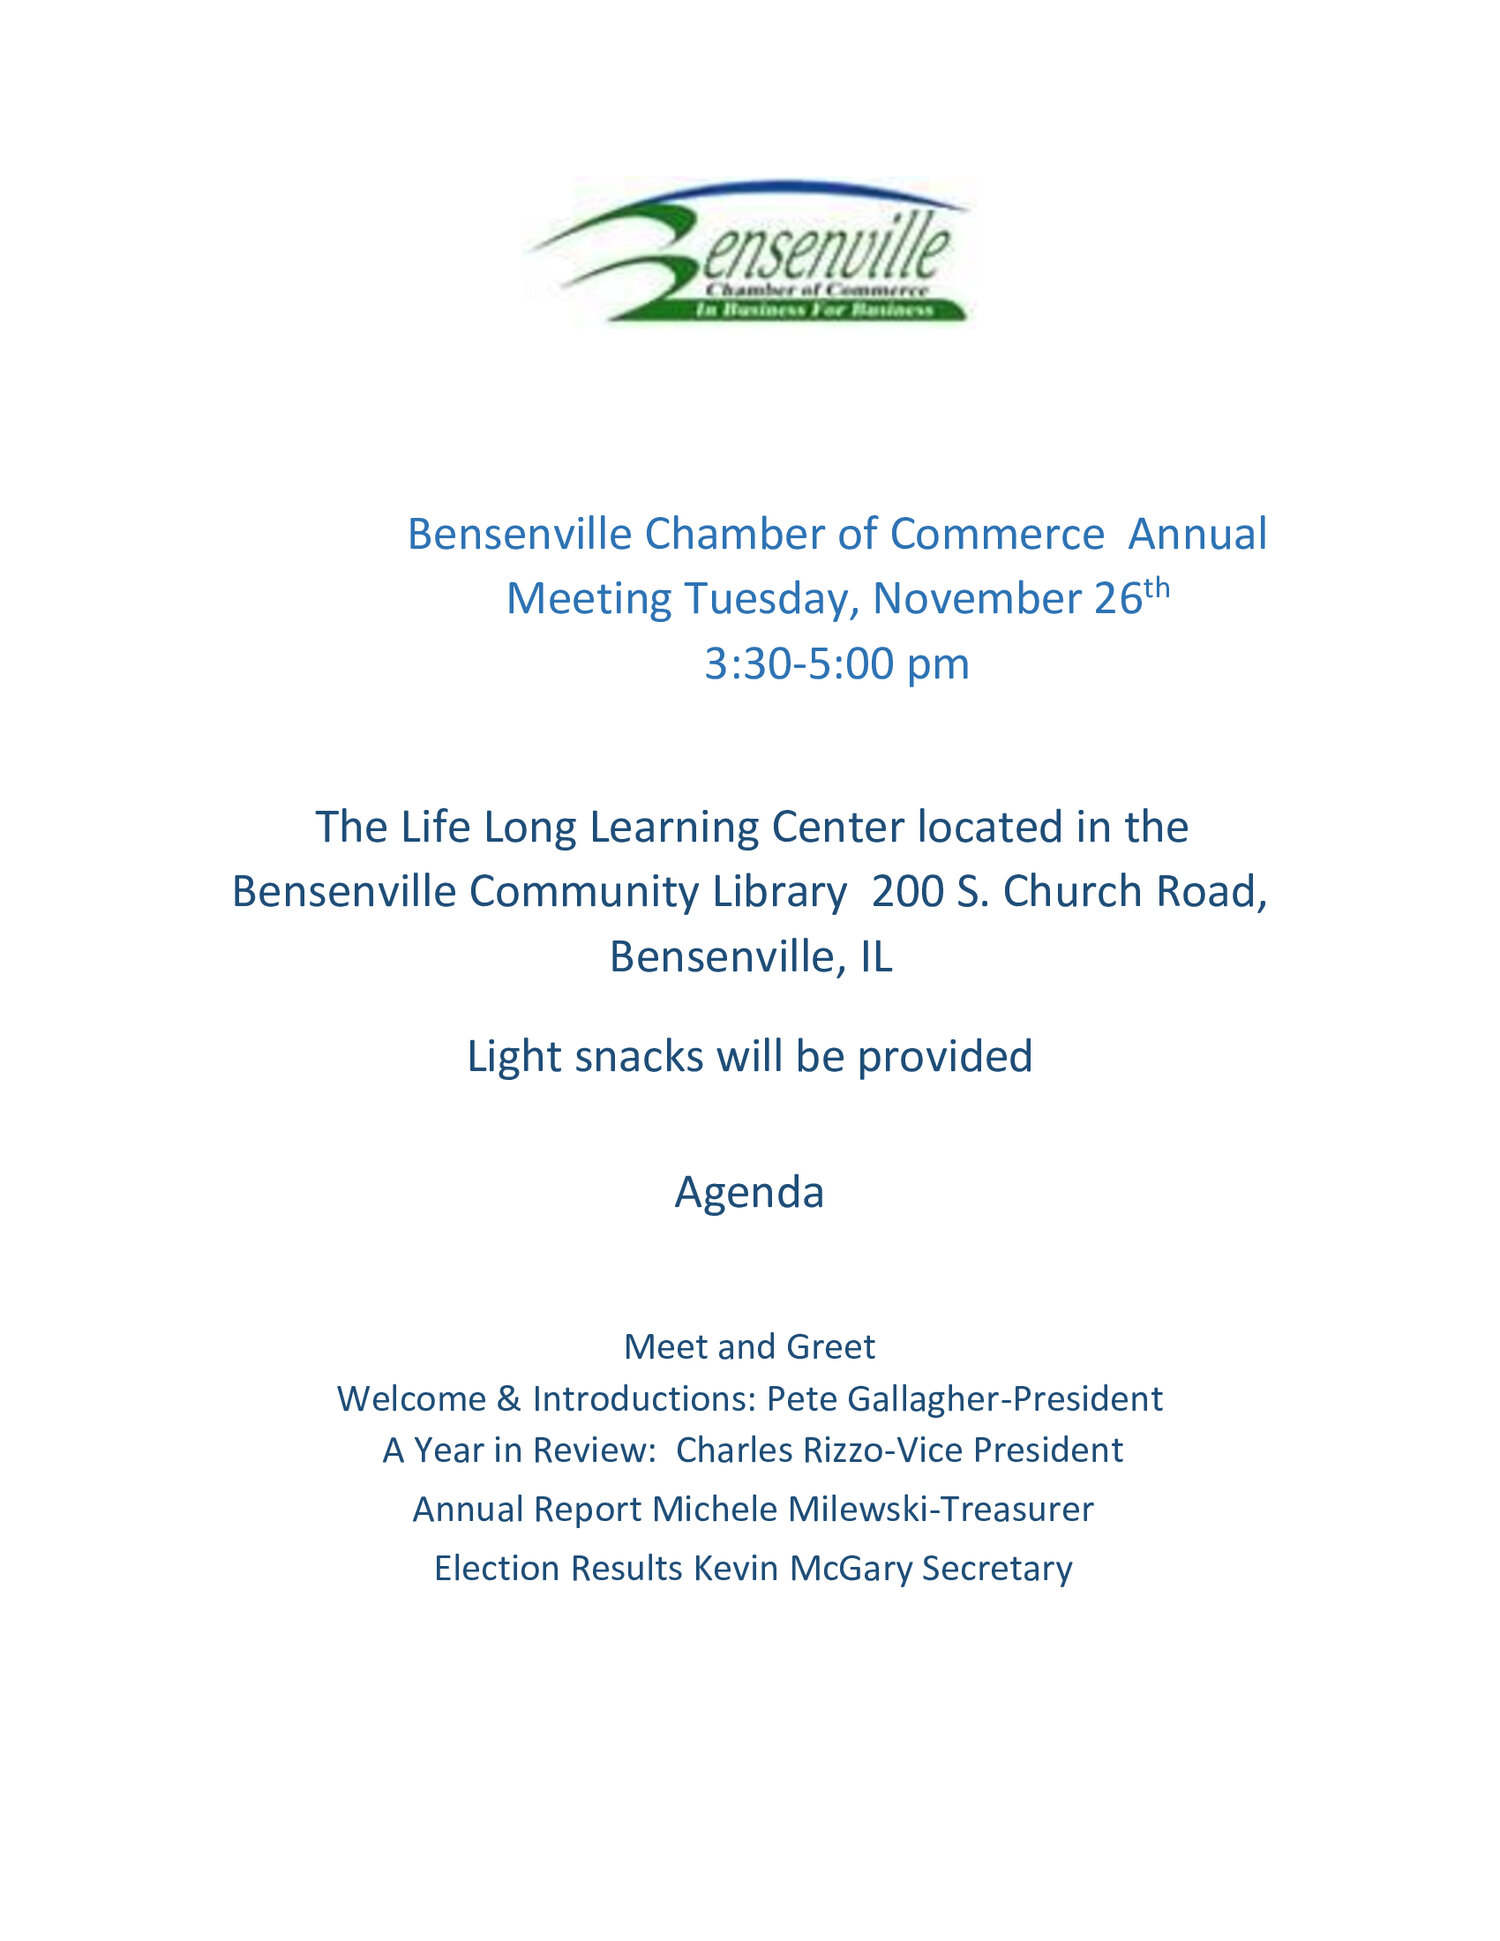 Bensenville Chamber of Commerce Annual Meeting —The Bensenville Chamber of  Commerce